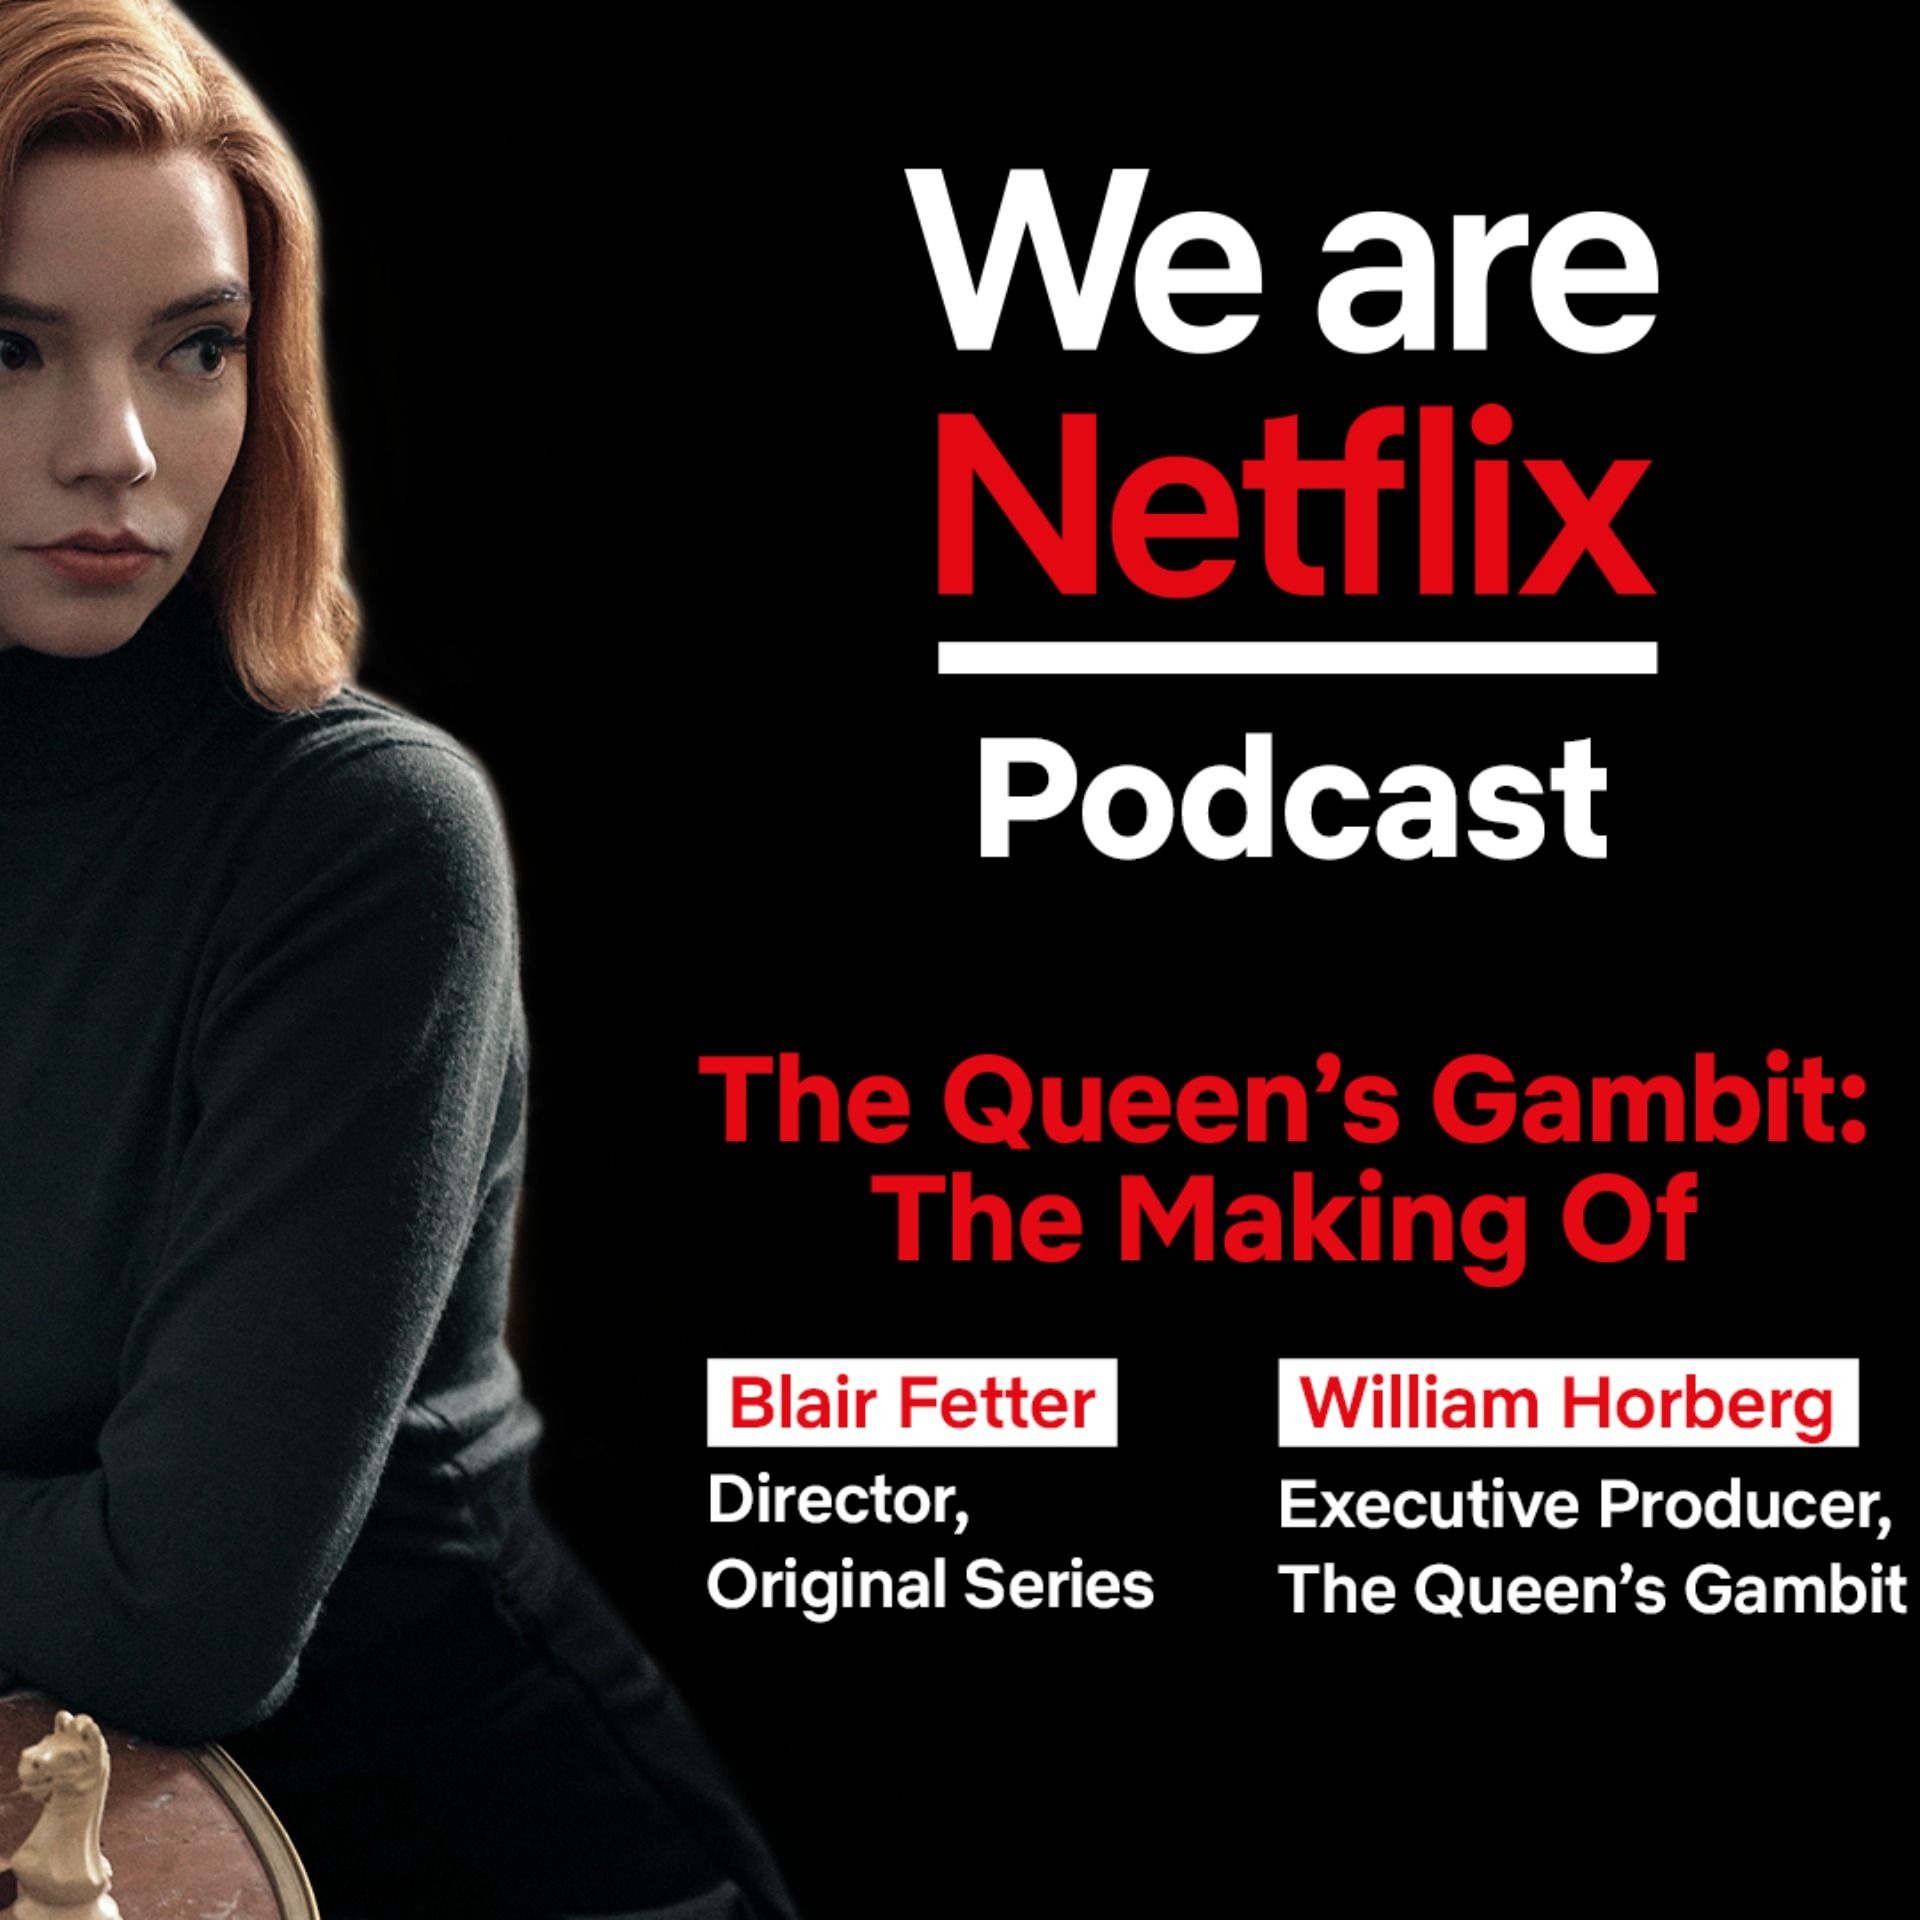 The Queen's Gambit: The Making Of